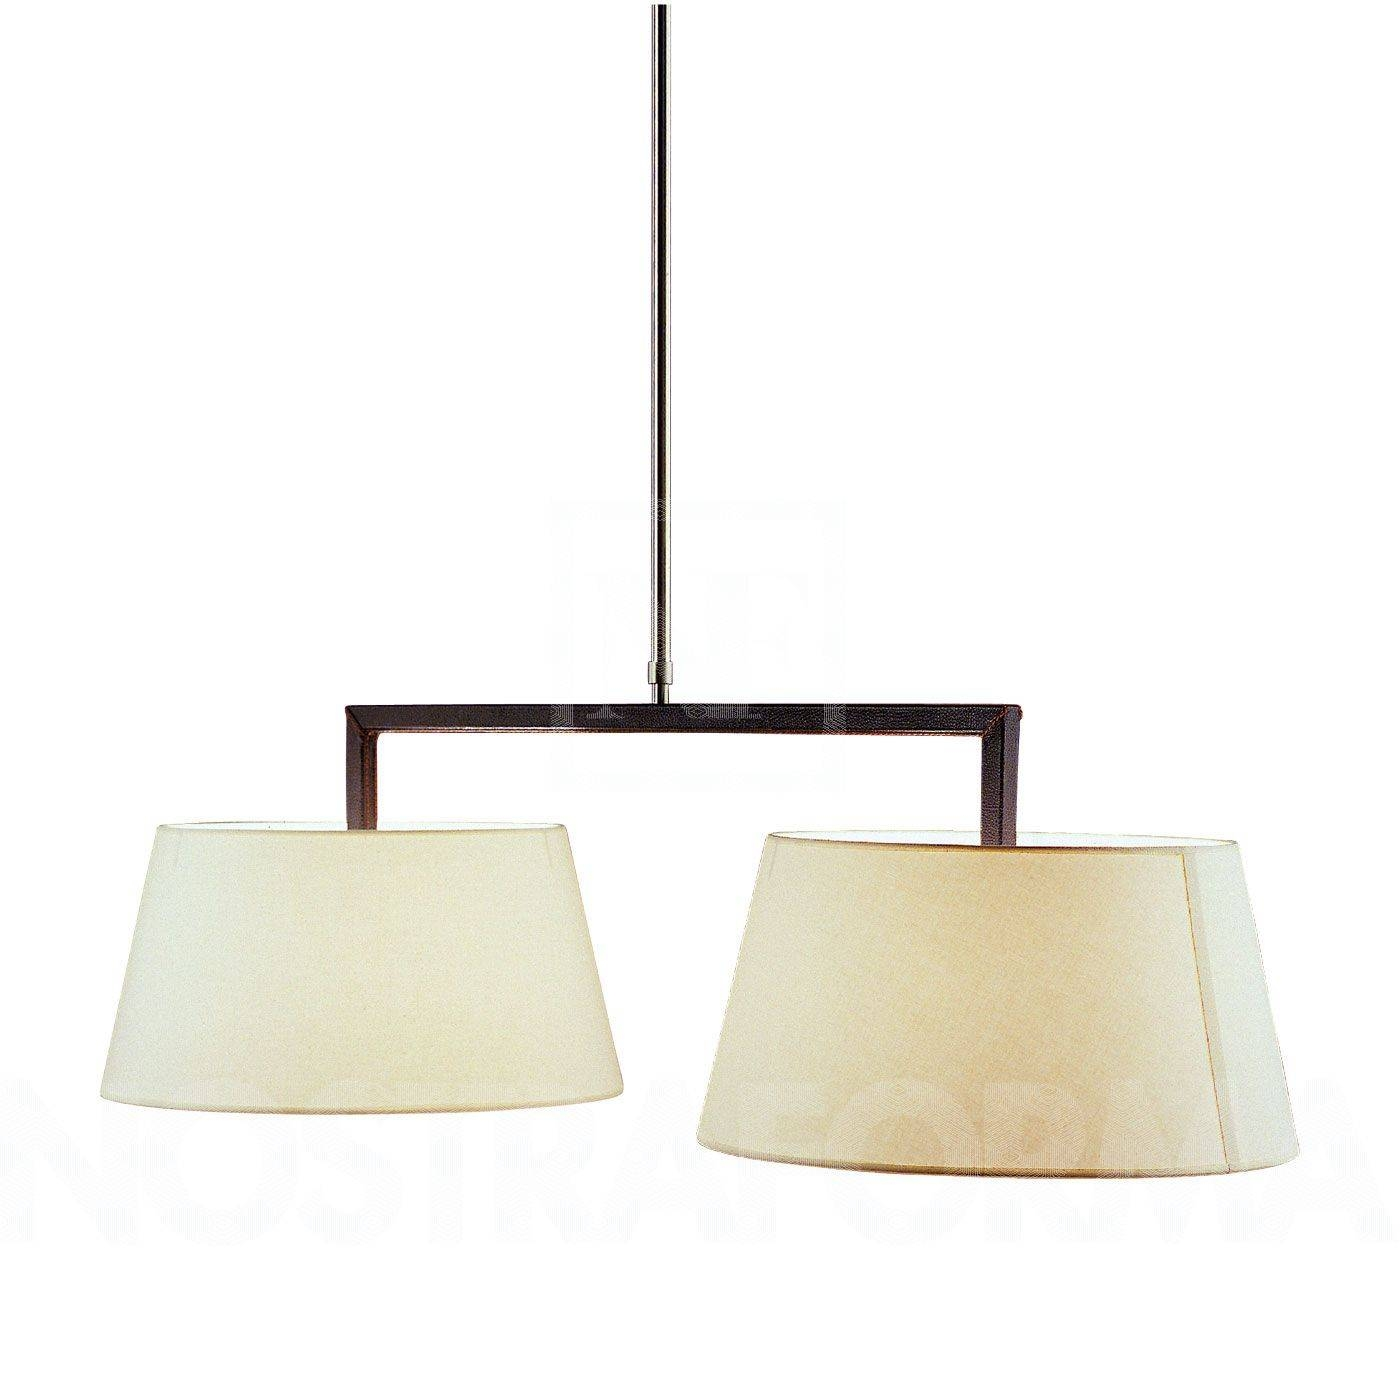 Bover Lua 2 Luces Pendant Lamp, Double » Modern And Contemporary Intended For Double Pendant Lights (View 6 of 15)